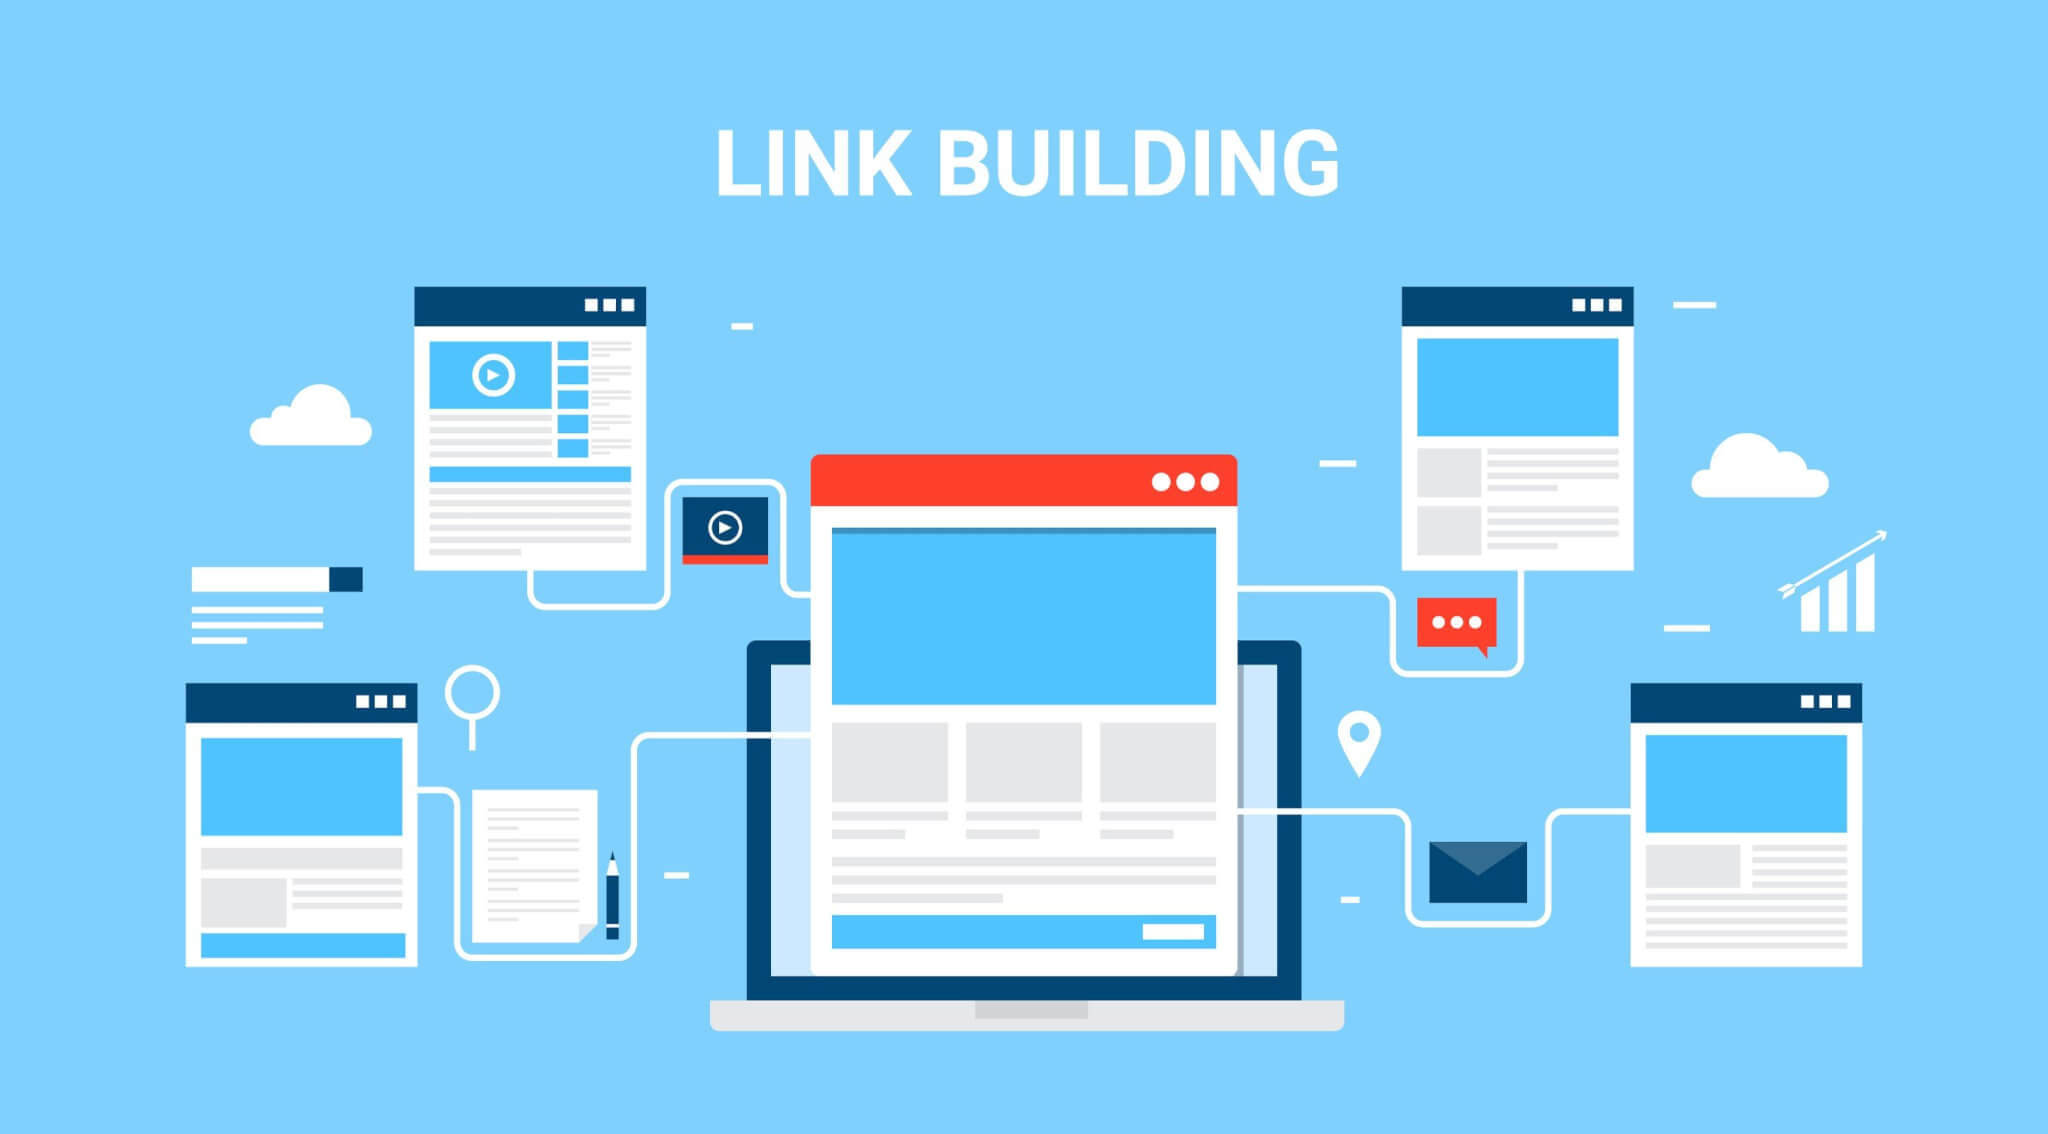 6 easy steps to a successful link building strategy